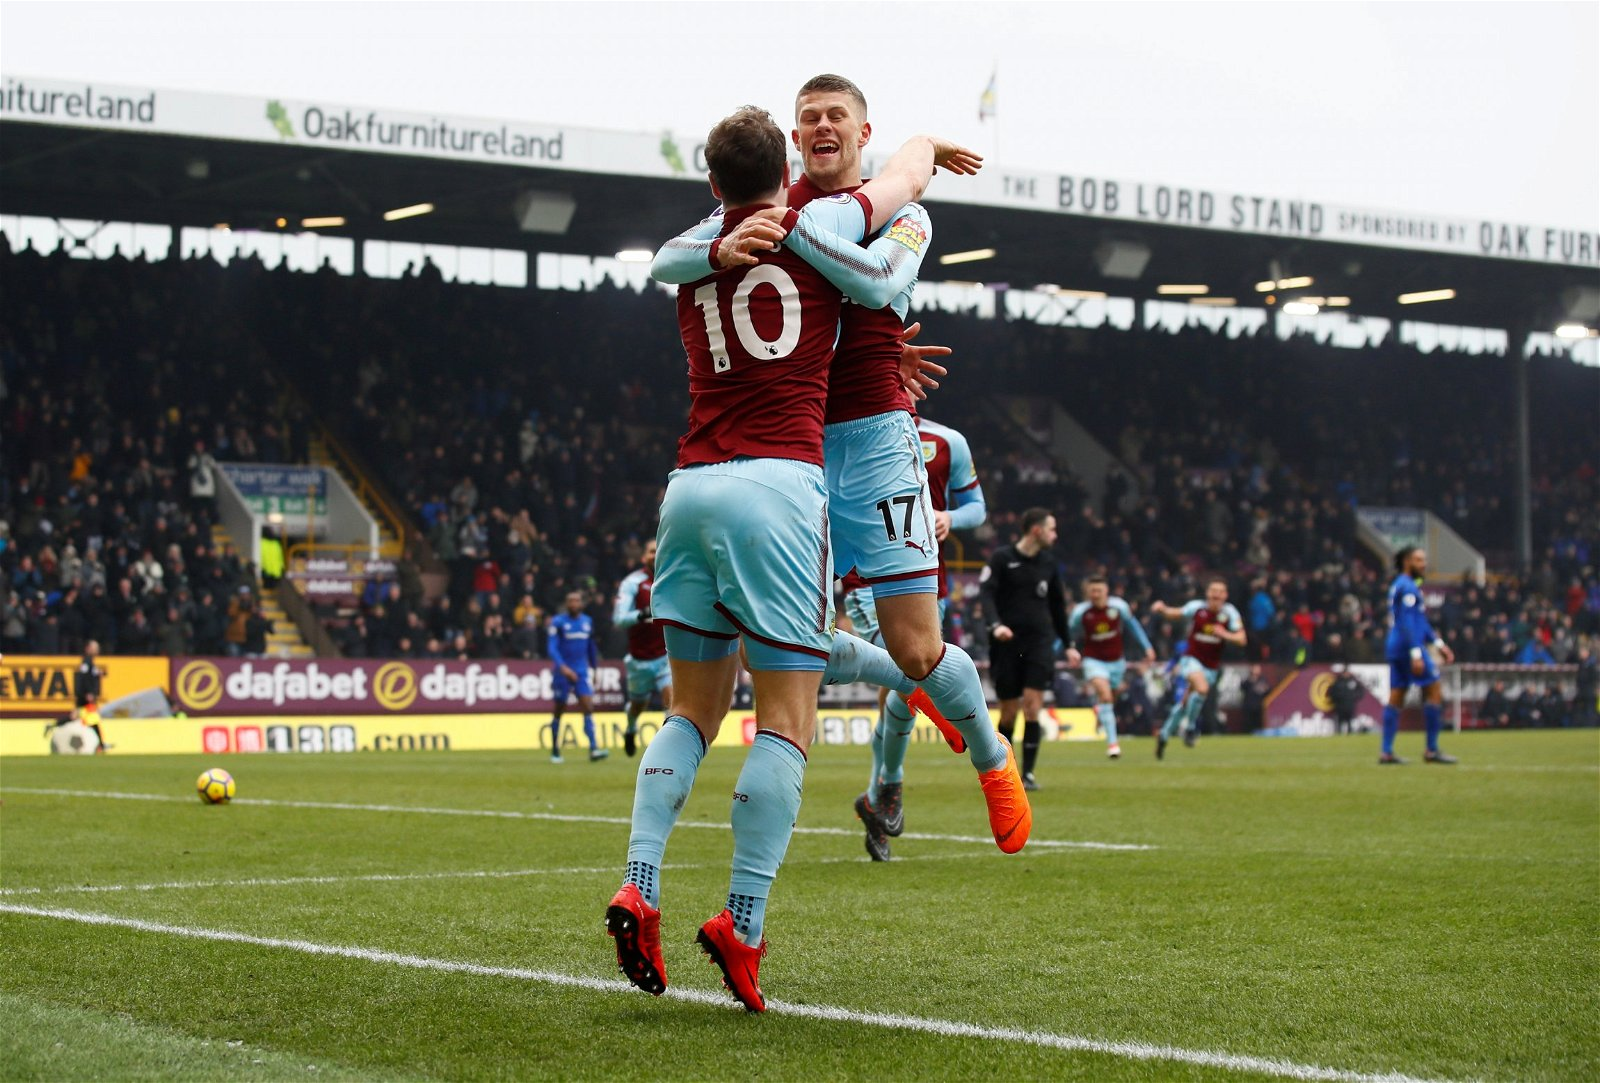 Burnley winger Johann Gudmundsson celebrates